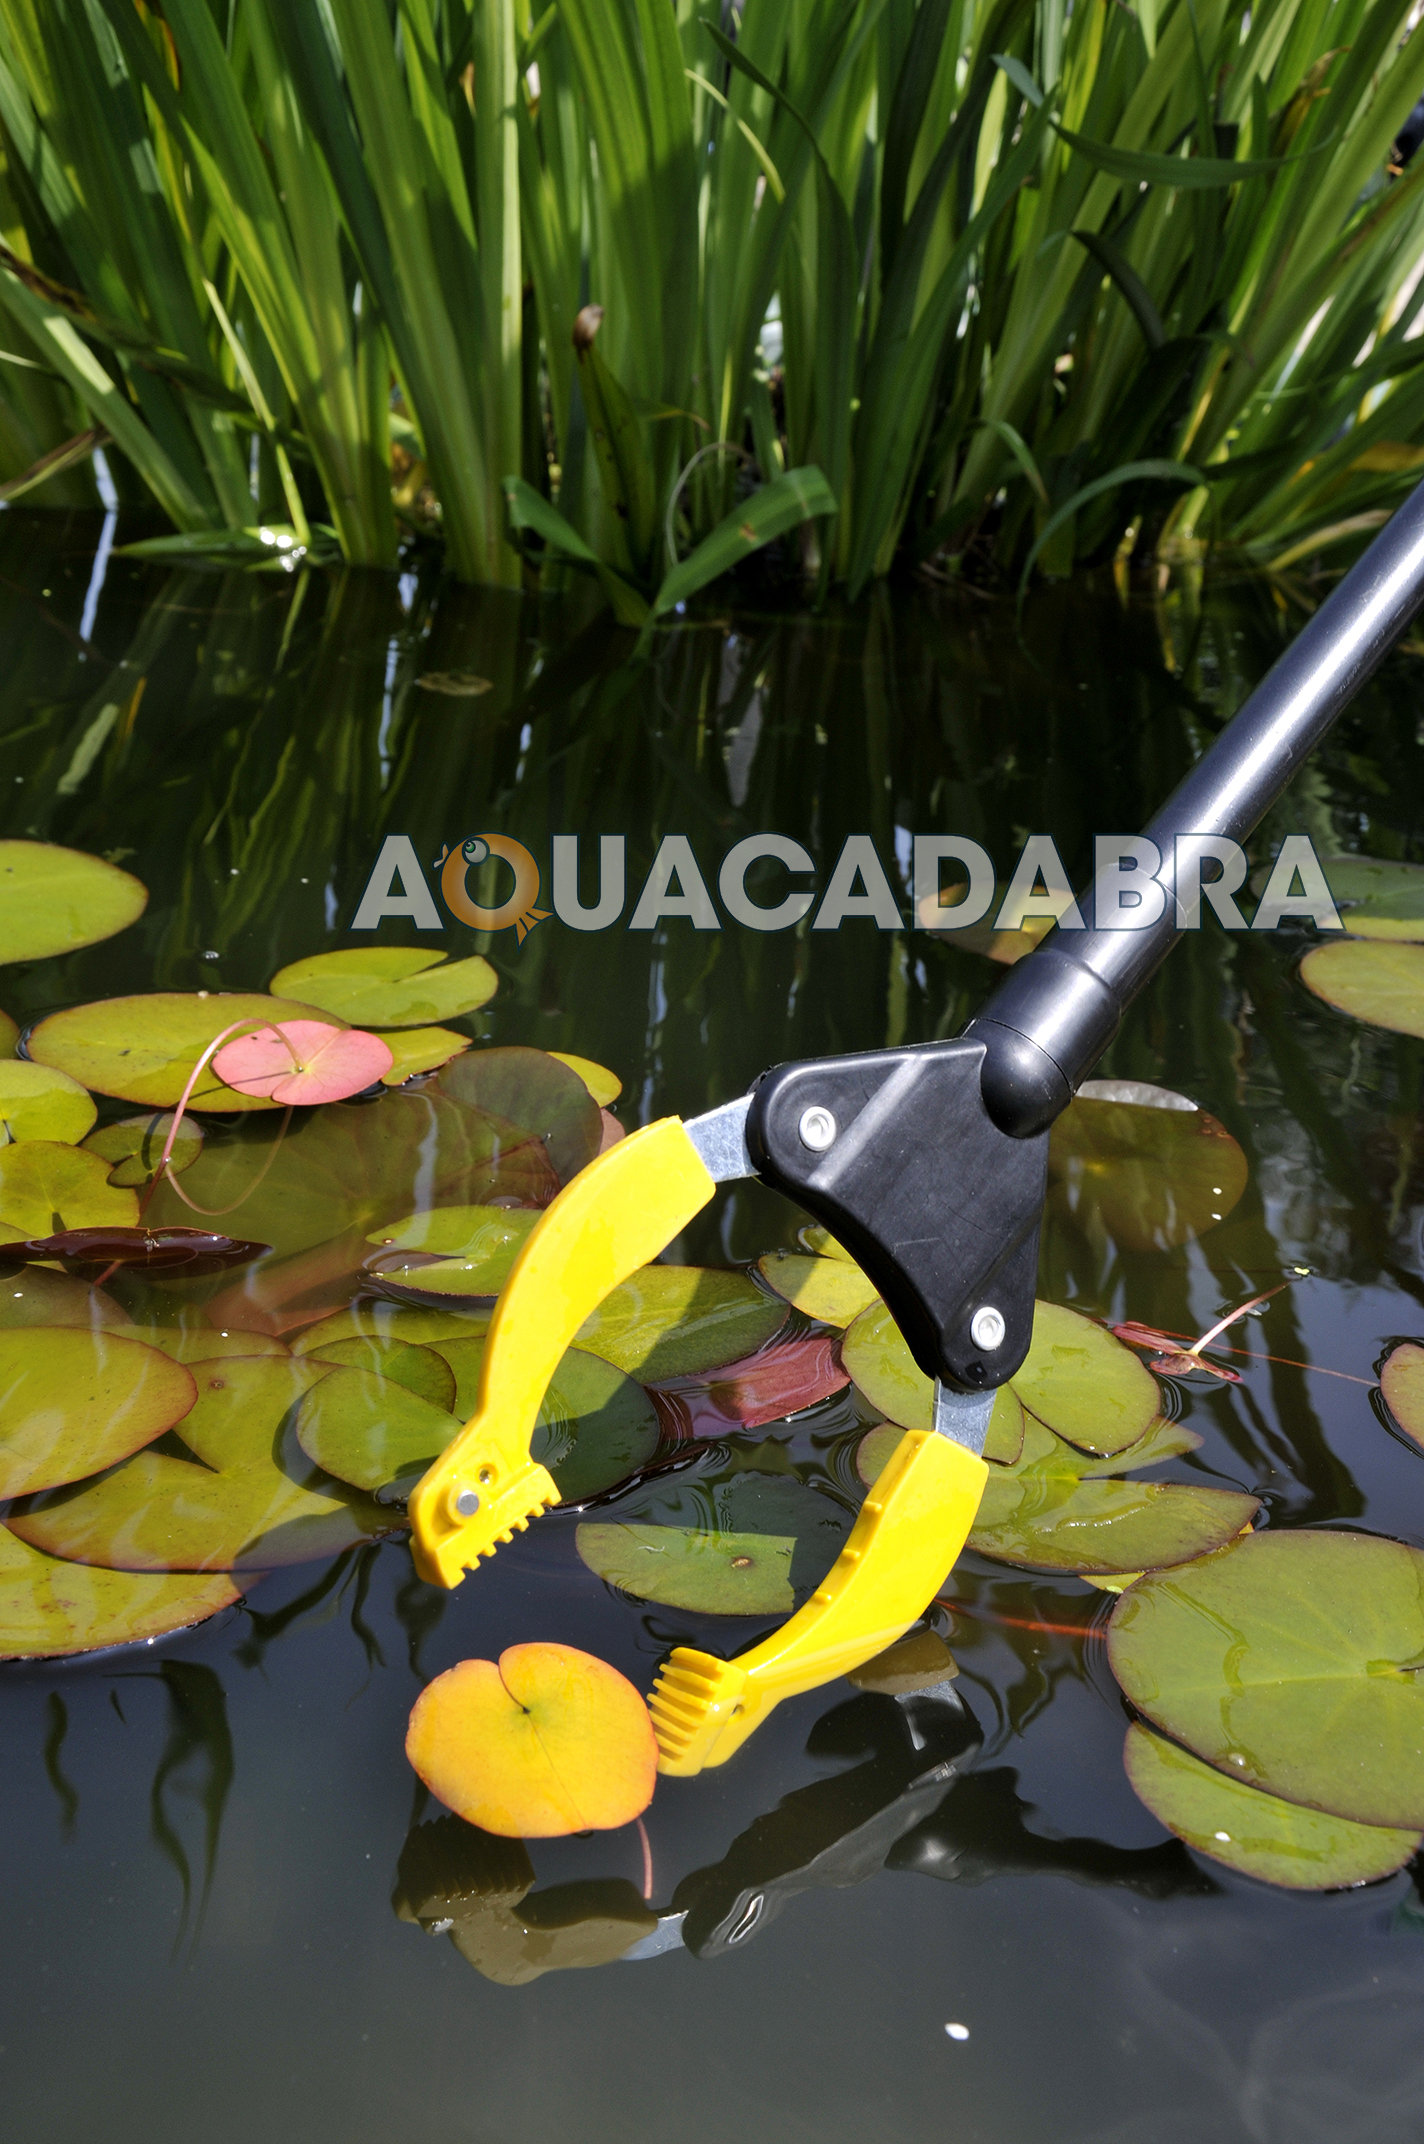 Hozelock pond grabber 1754 garden fish pond tool for Koi pond upkeep